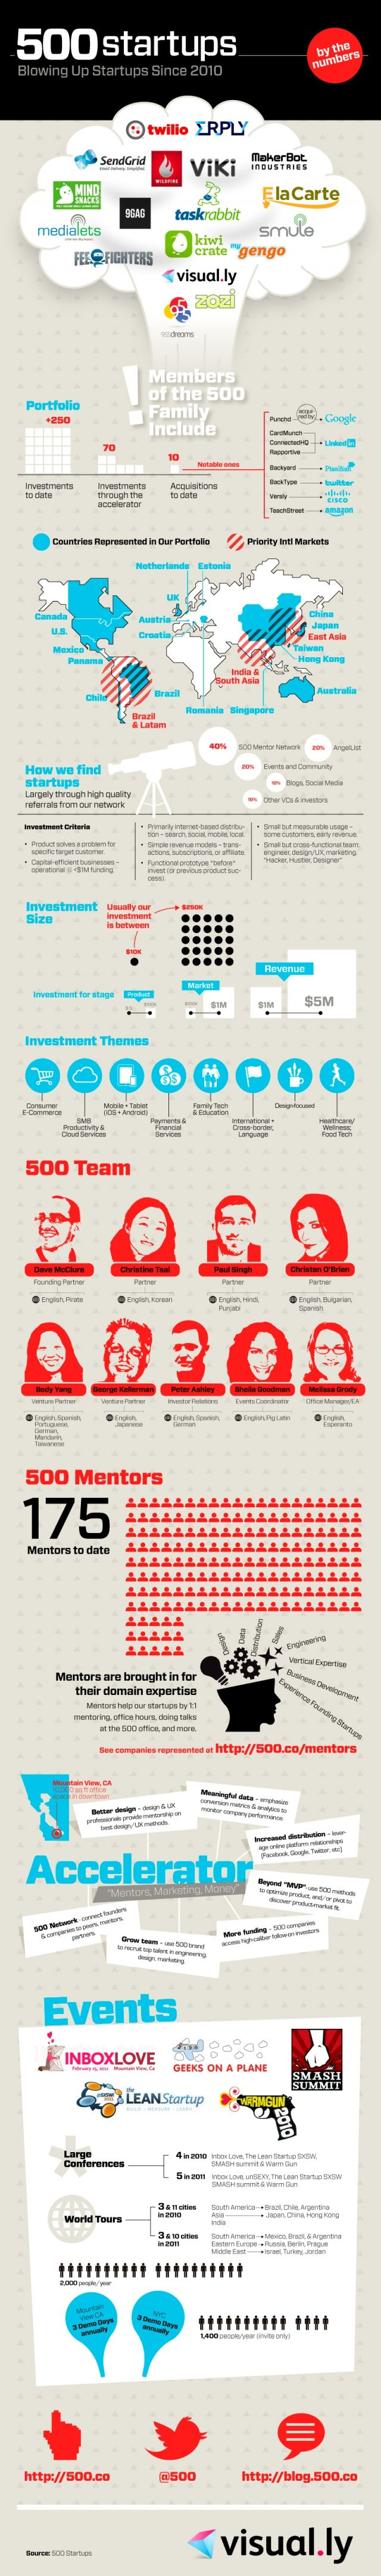 500 Startups / BLOWING UP STARTUPS